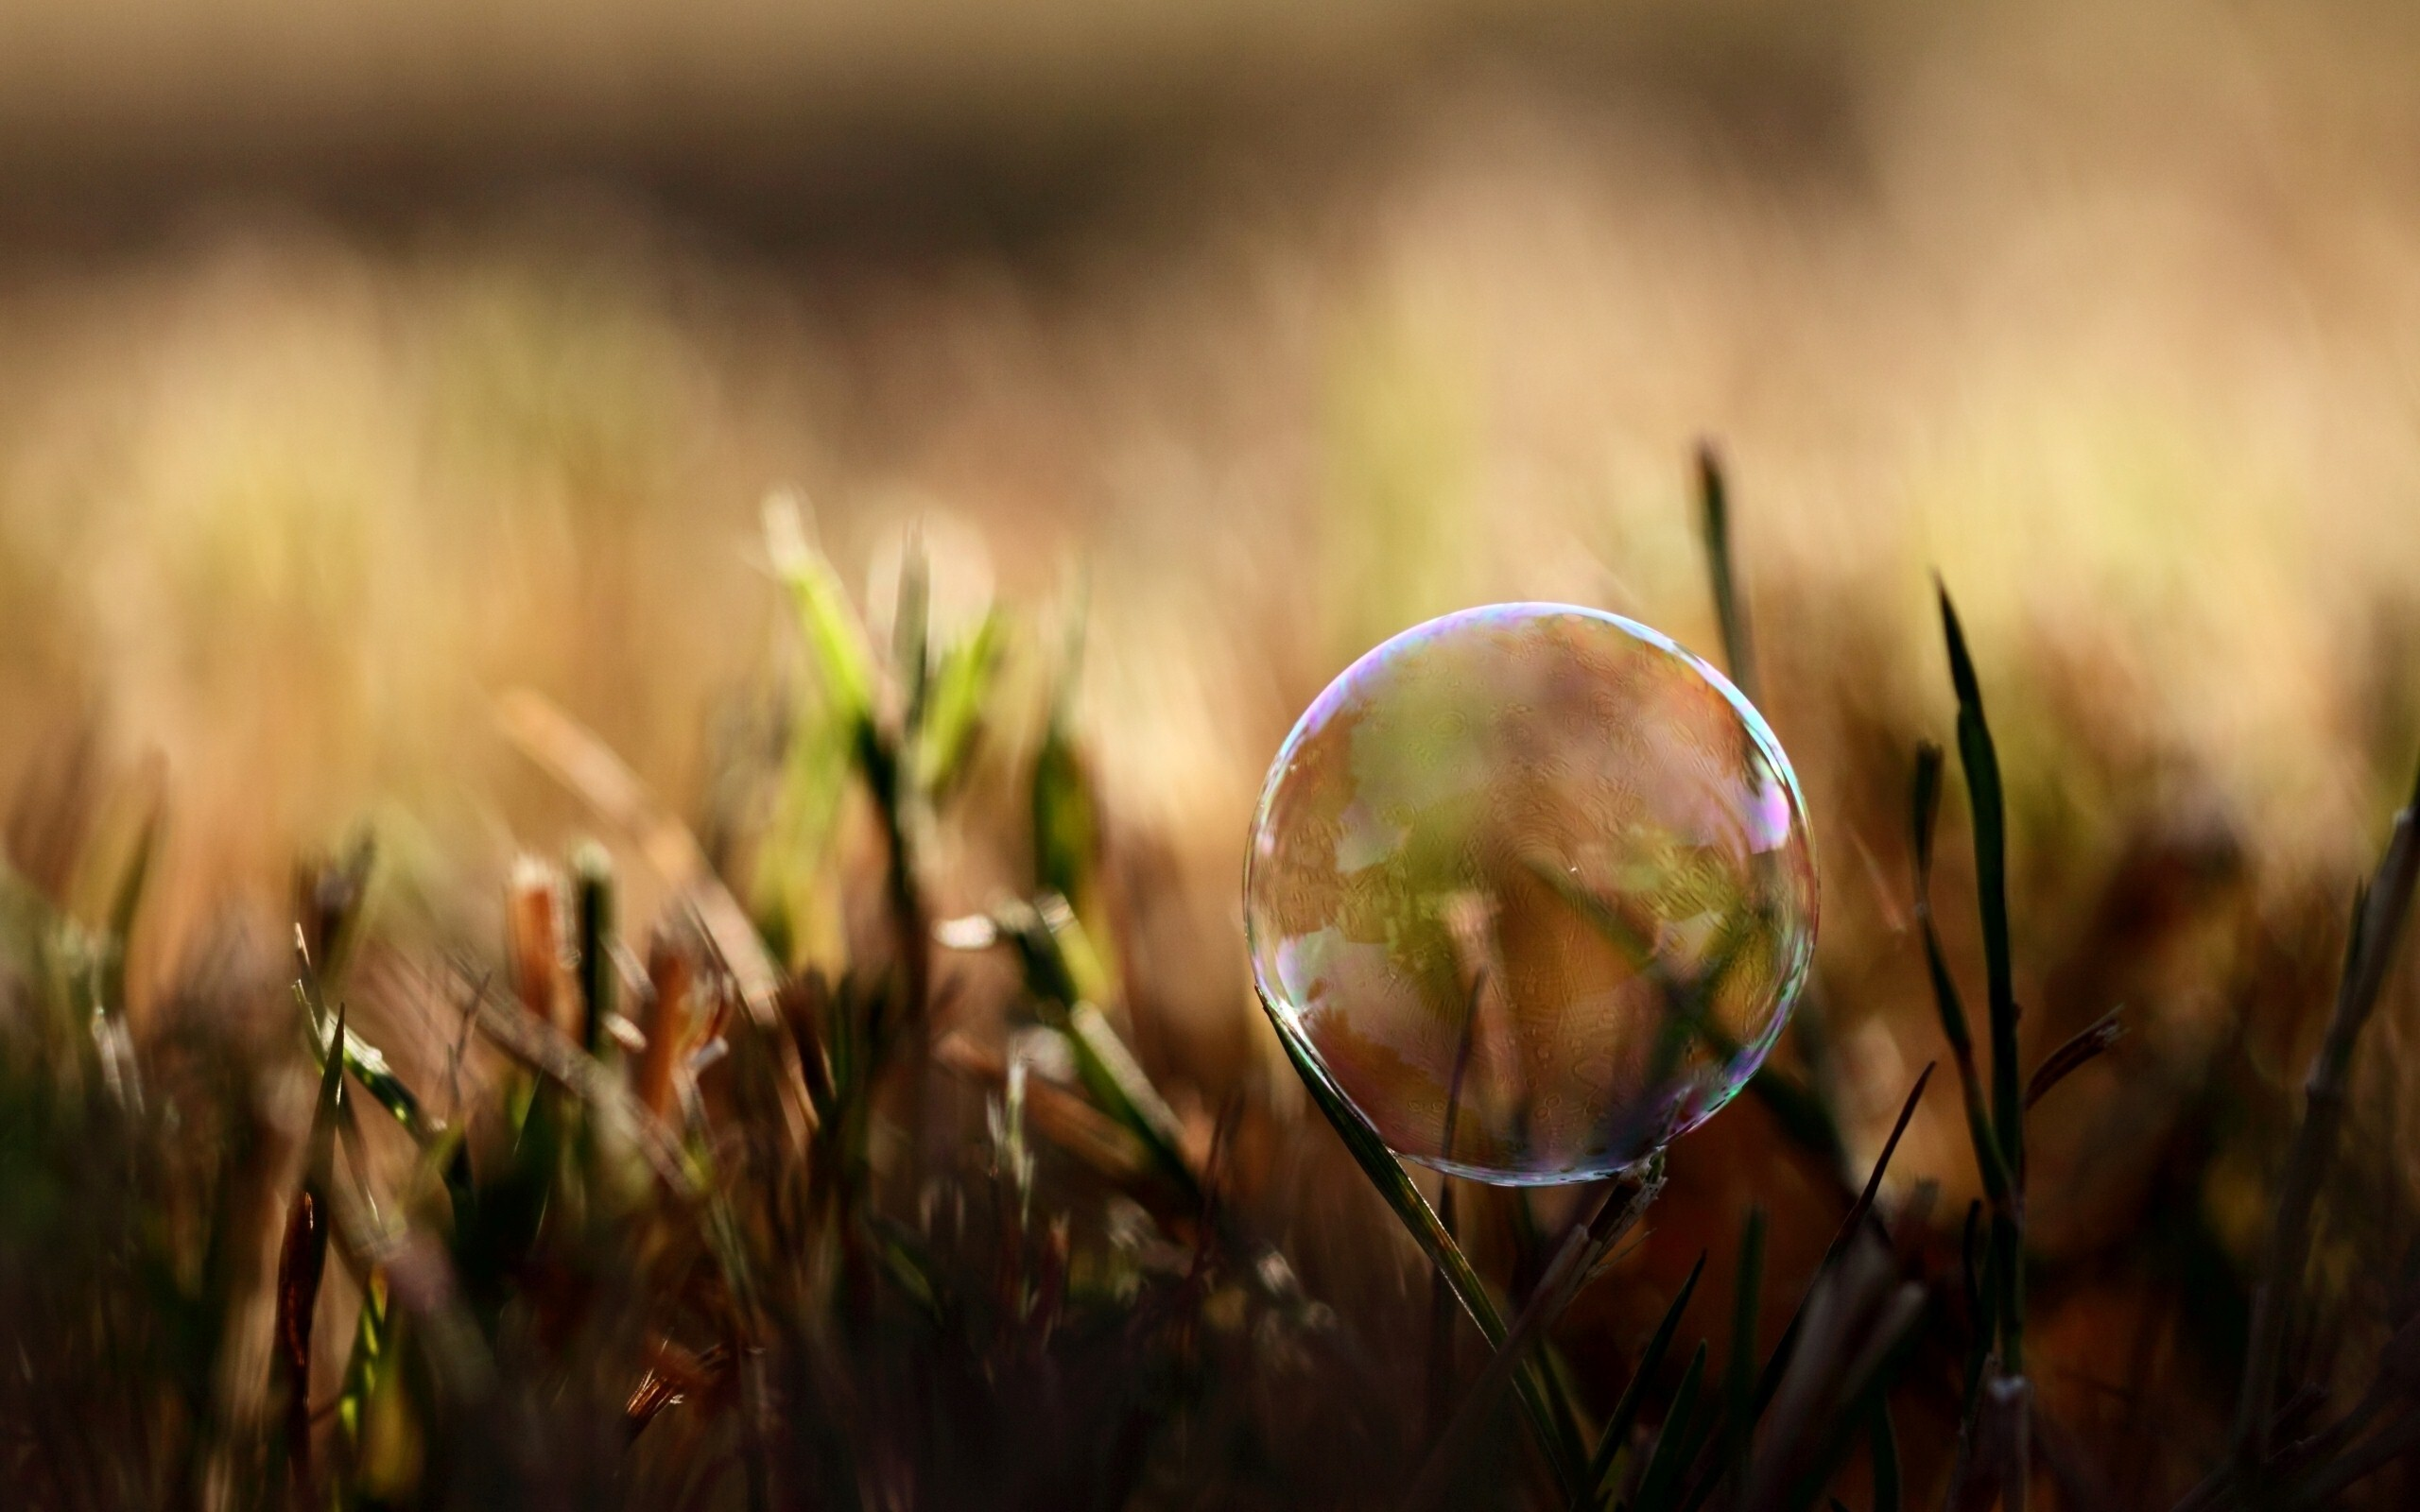 3d Bubbles Wallpaper: 3D Bubble In Grass Wallpaper